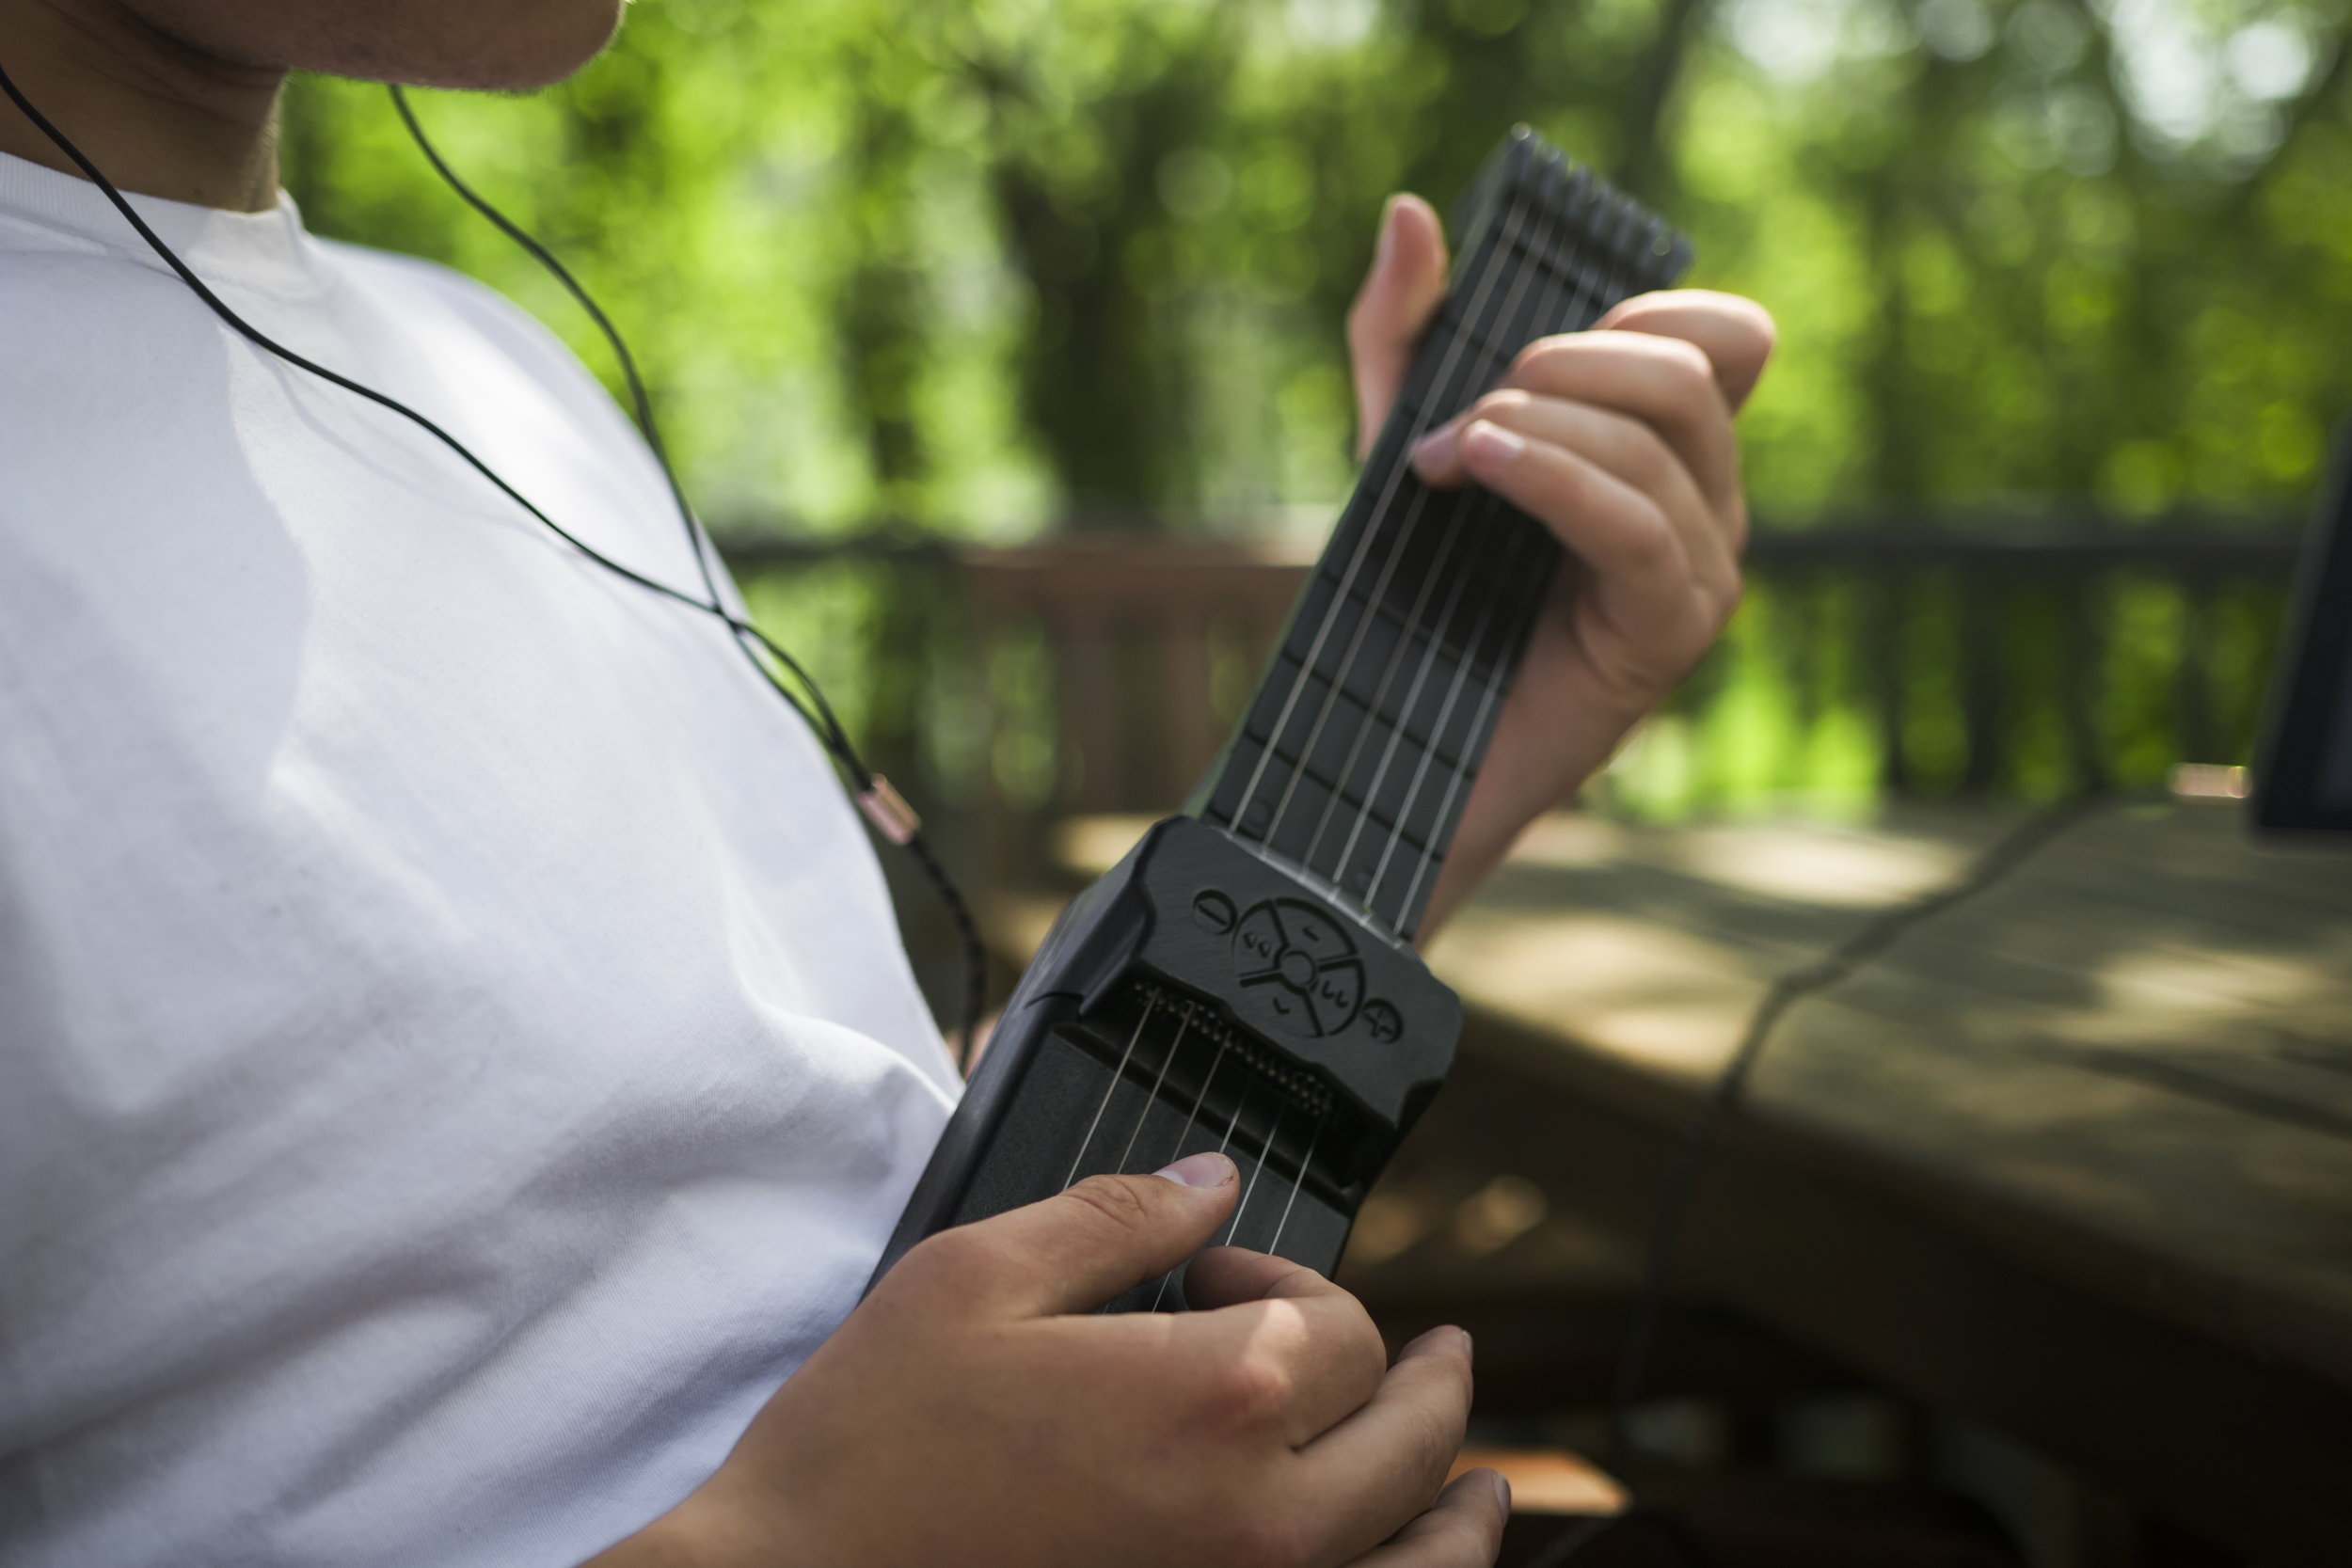 The Jamstik 7 will begin shipping to backers in August 2018